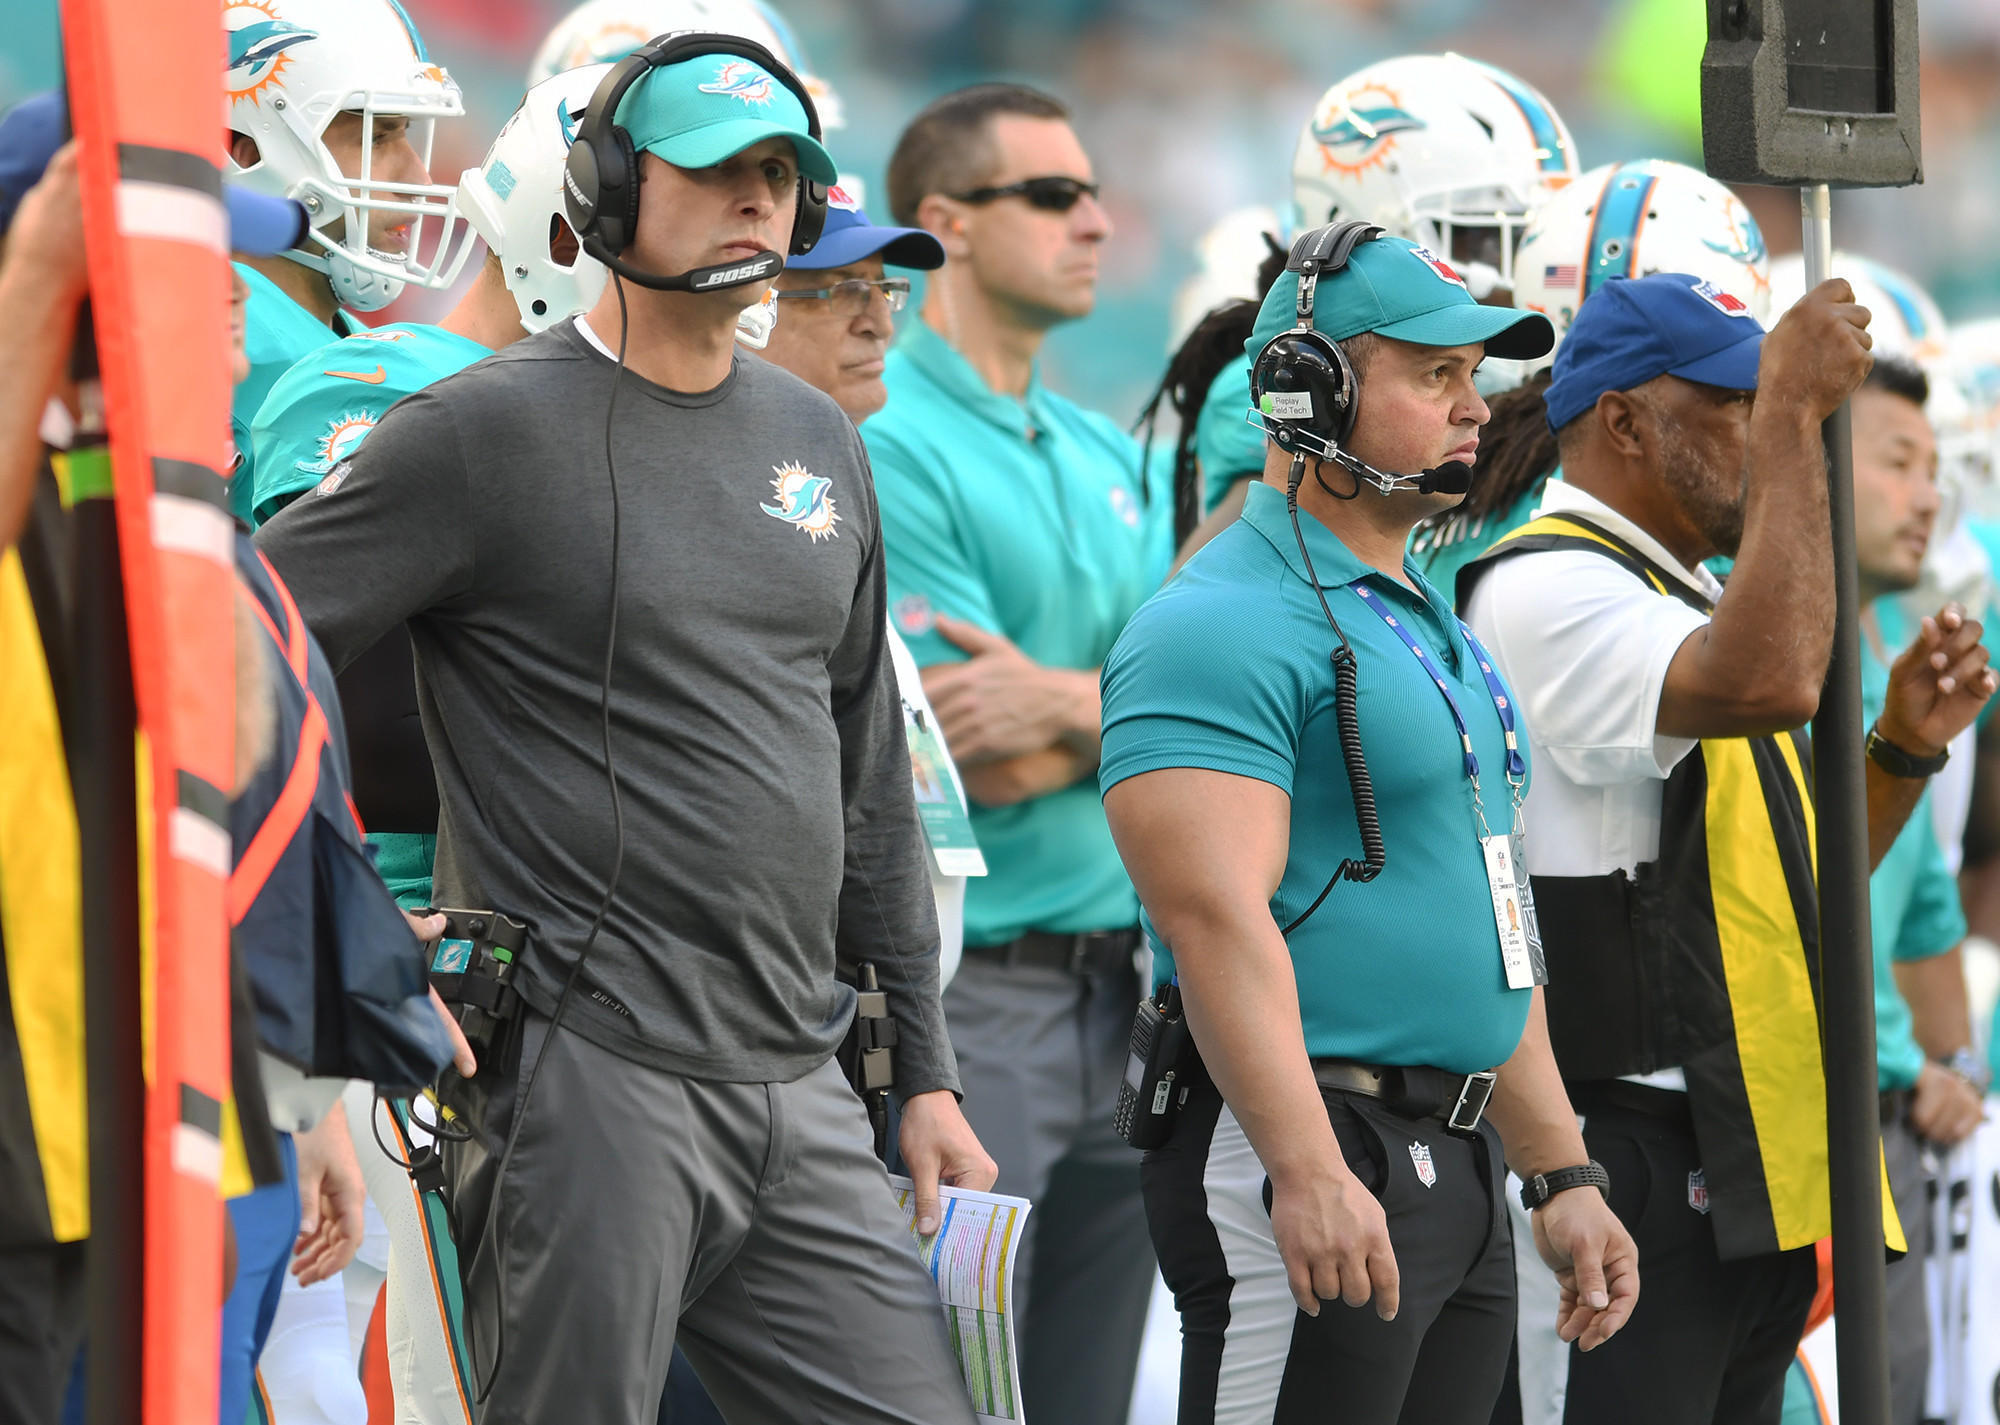 Fl-sp-dolphins-20171212